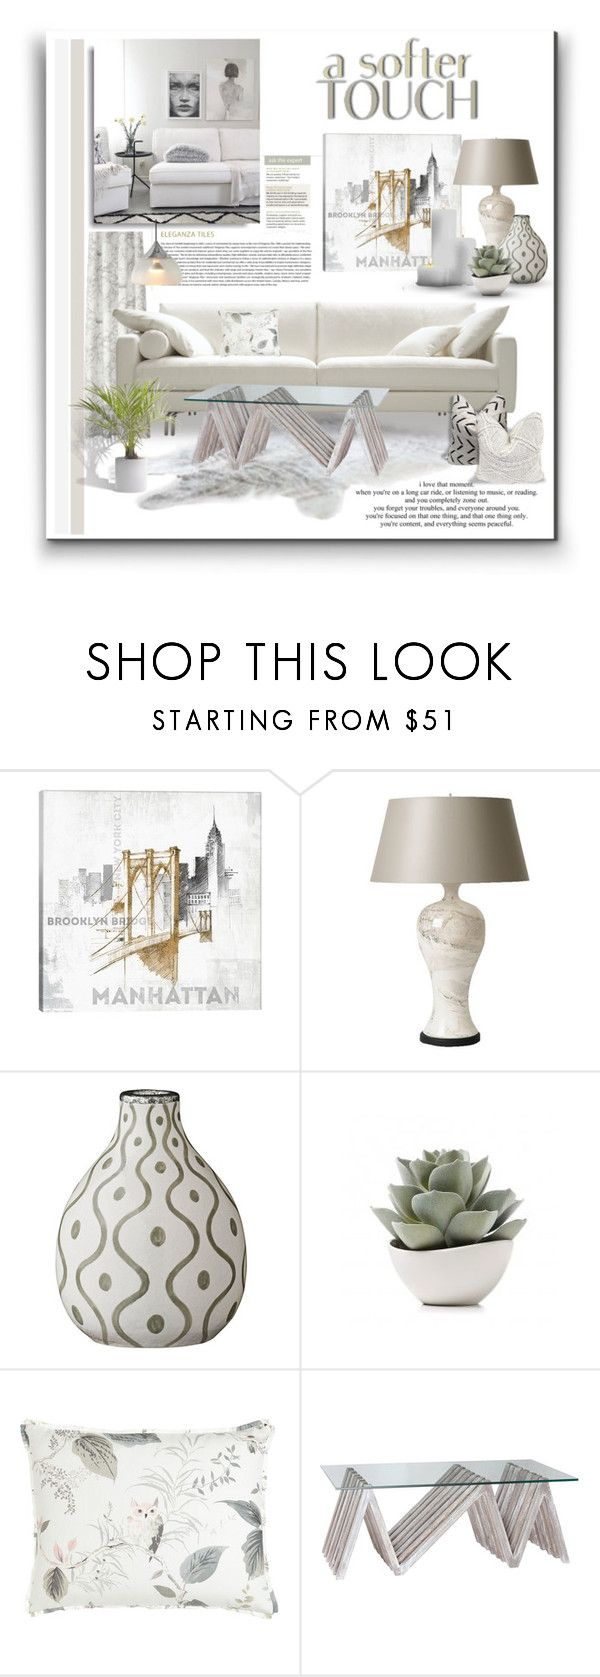 """A Softer Touch"" by signaturenails-dstanley ❤ liked on Polyvore featuring interior, interiors, interior design, home, home decor, interior decorating, Magdalena, iCanvas, Barbara Cosgrove and Lene Bjerre"